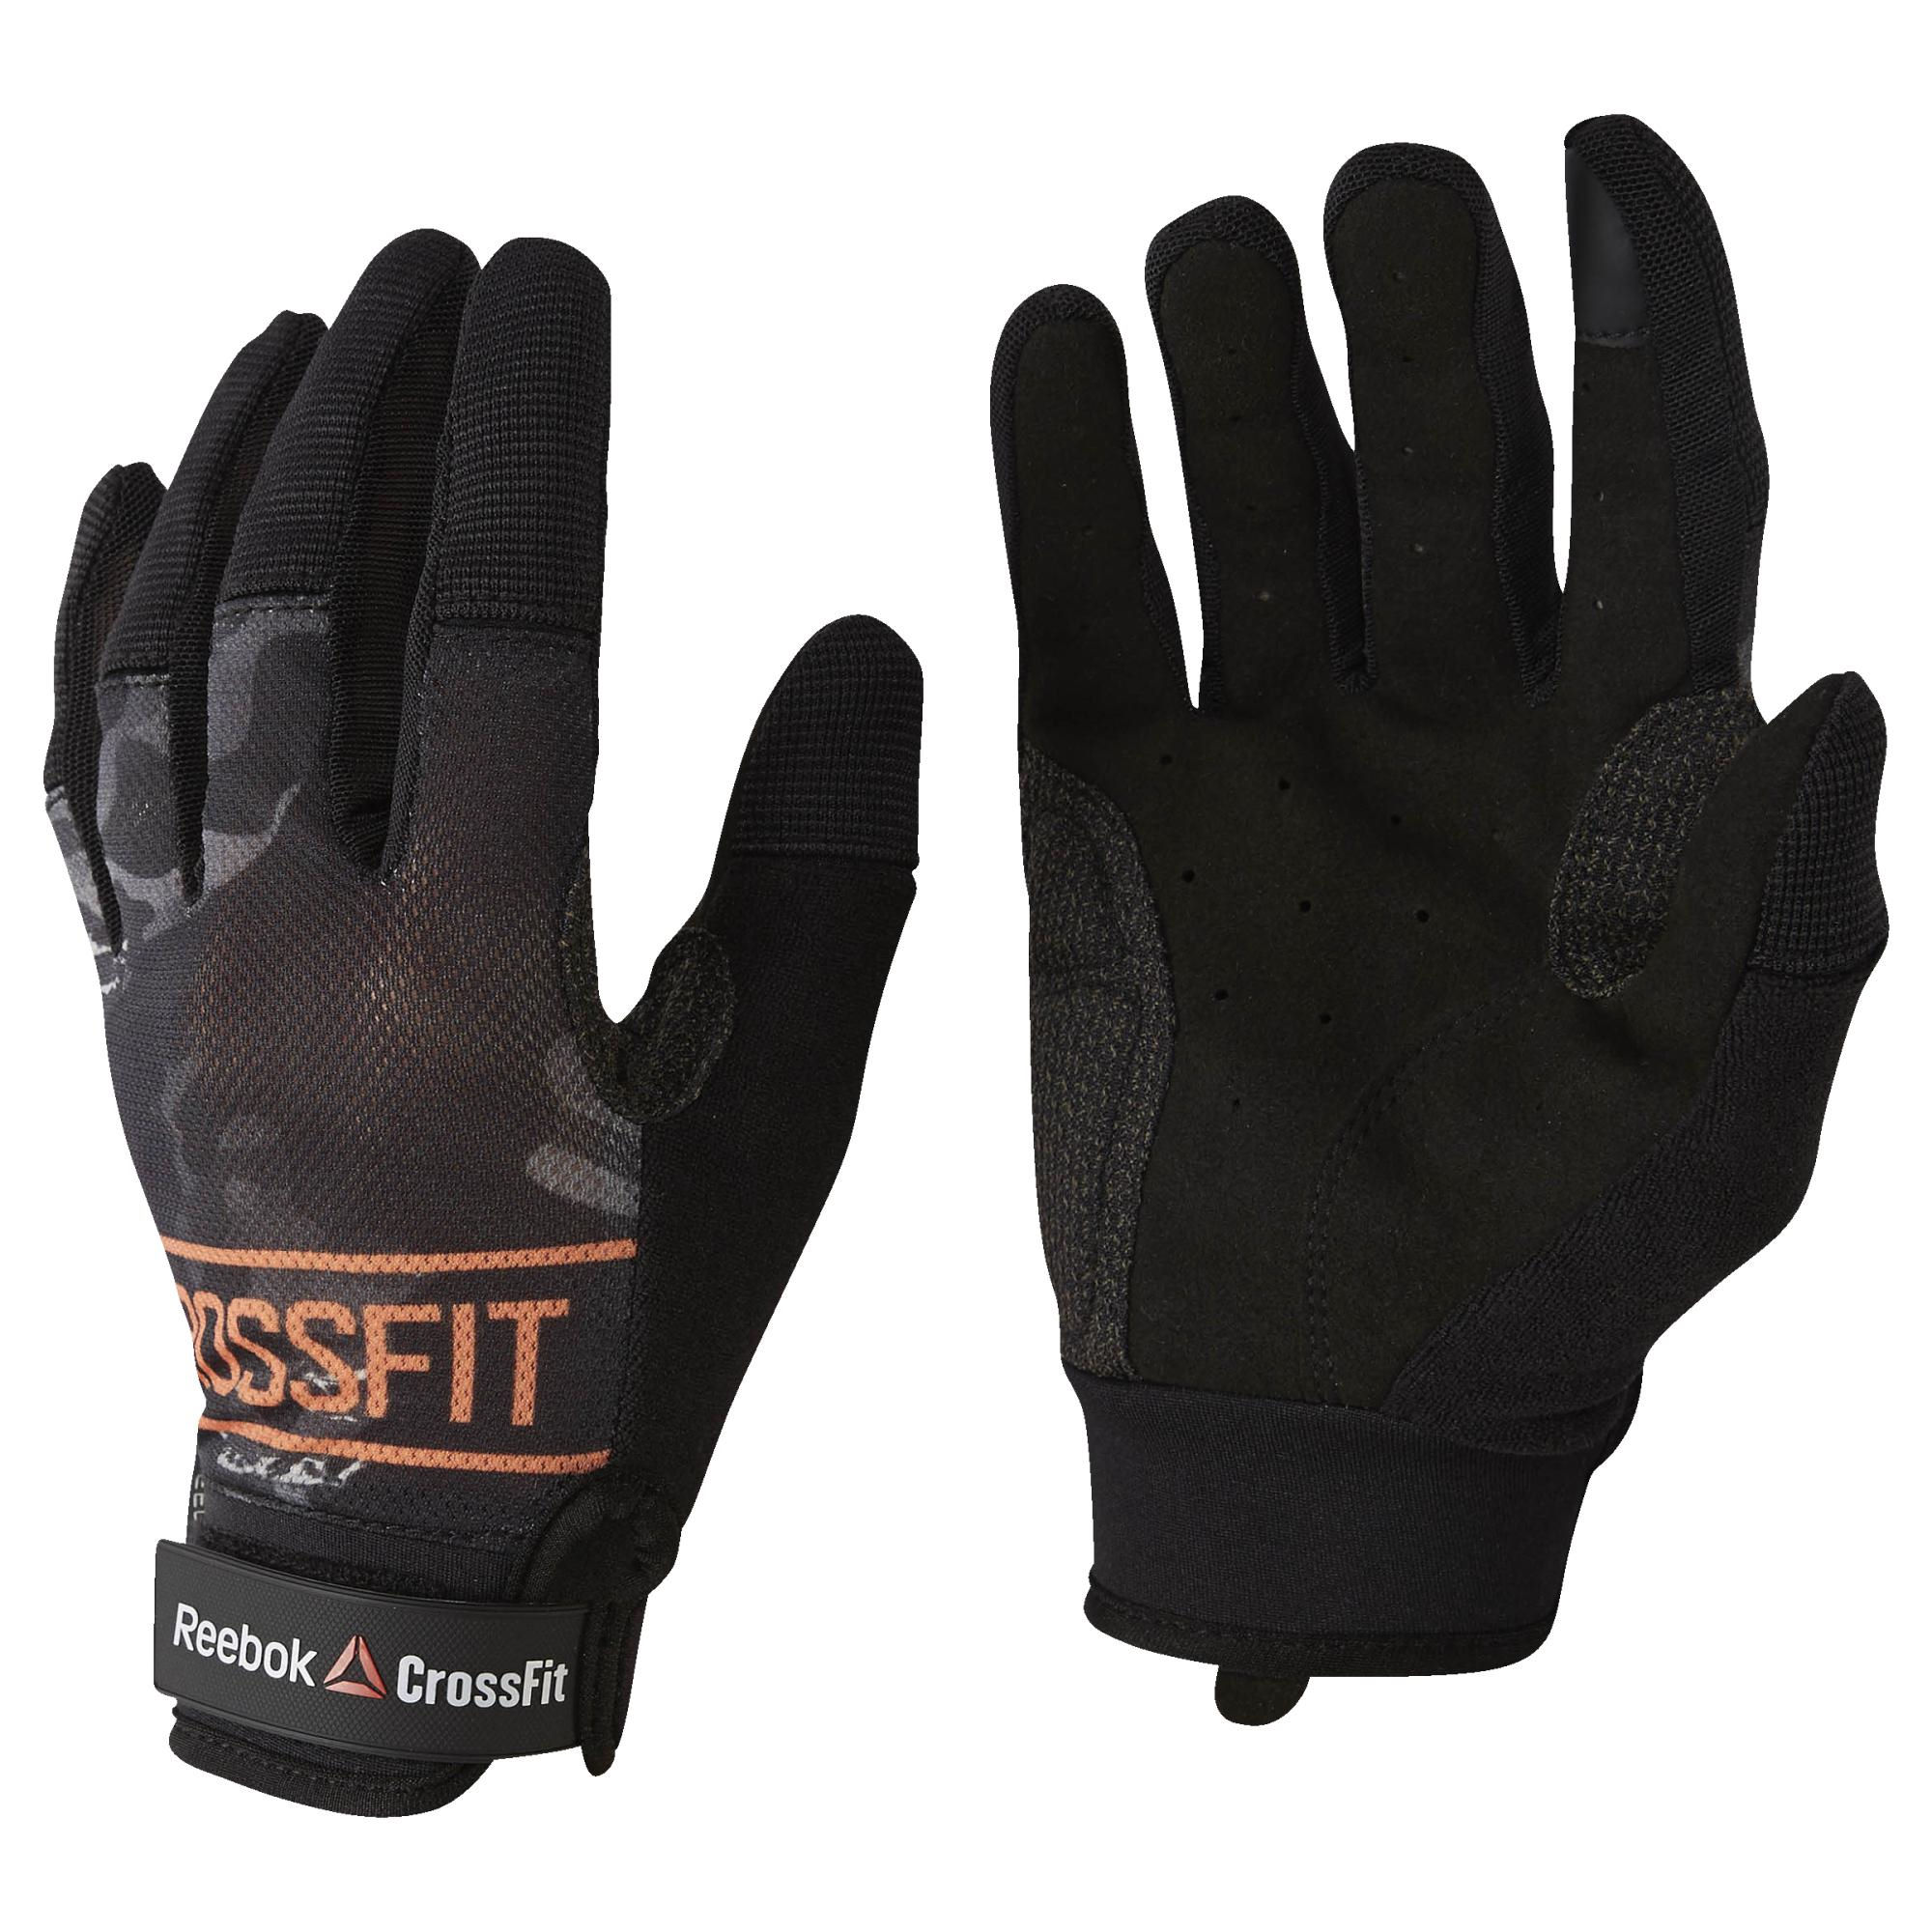 Reebok Crossfit Training Gloves: Reebok Women's X CrossFit Training Glove (SS16